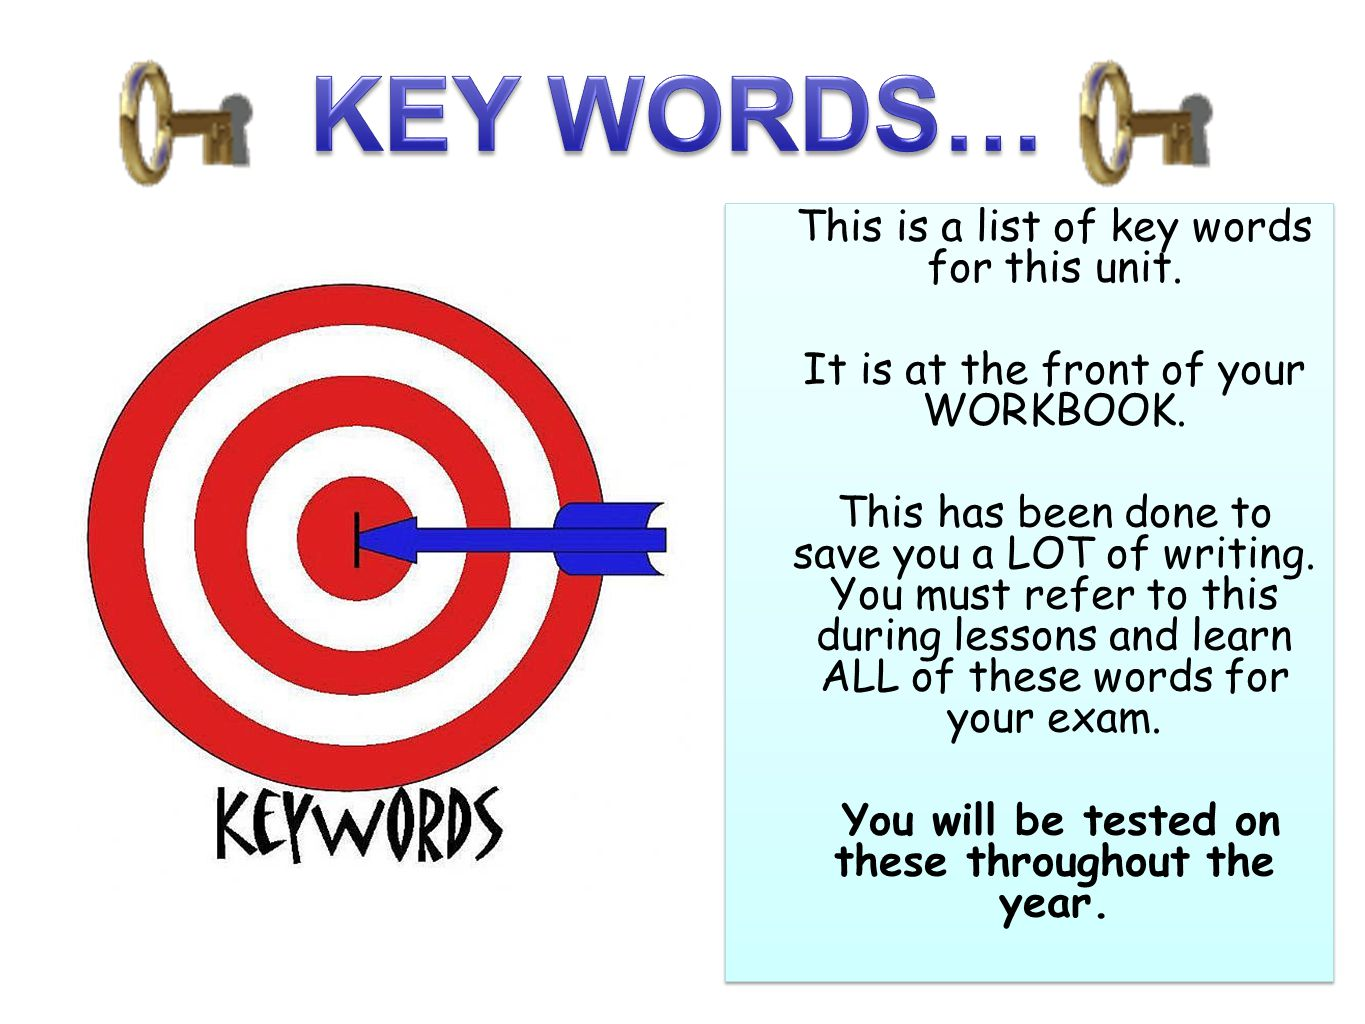 KEY WORDS… This is a list of key words for this unit.